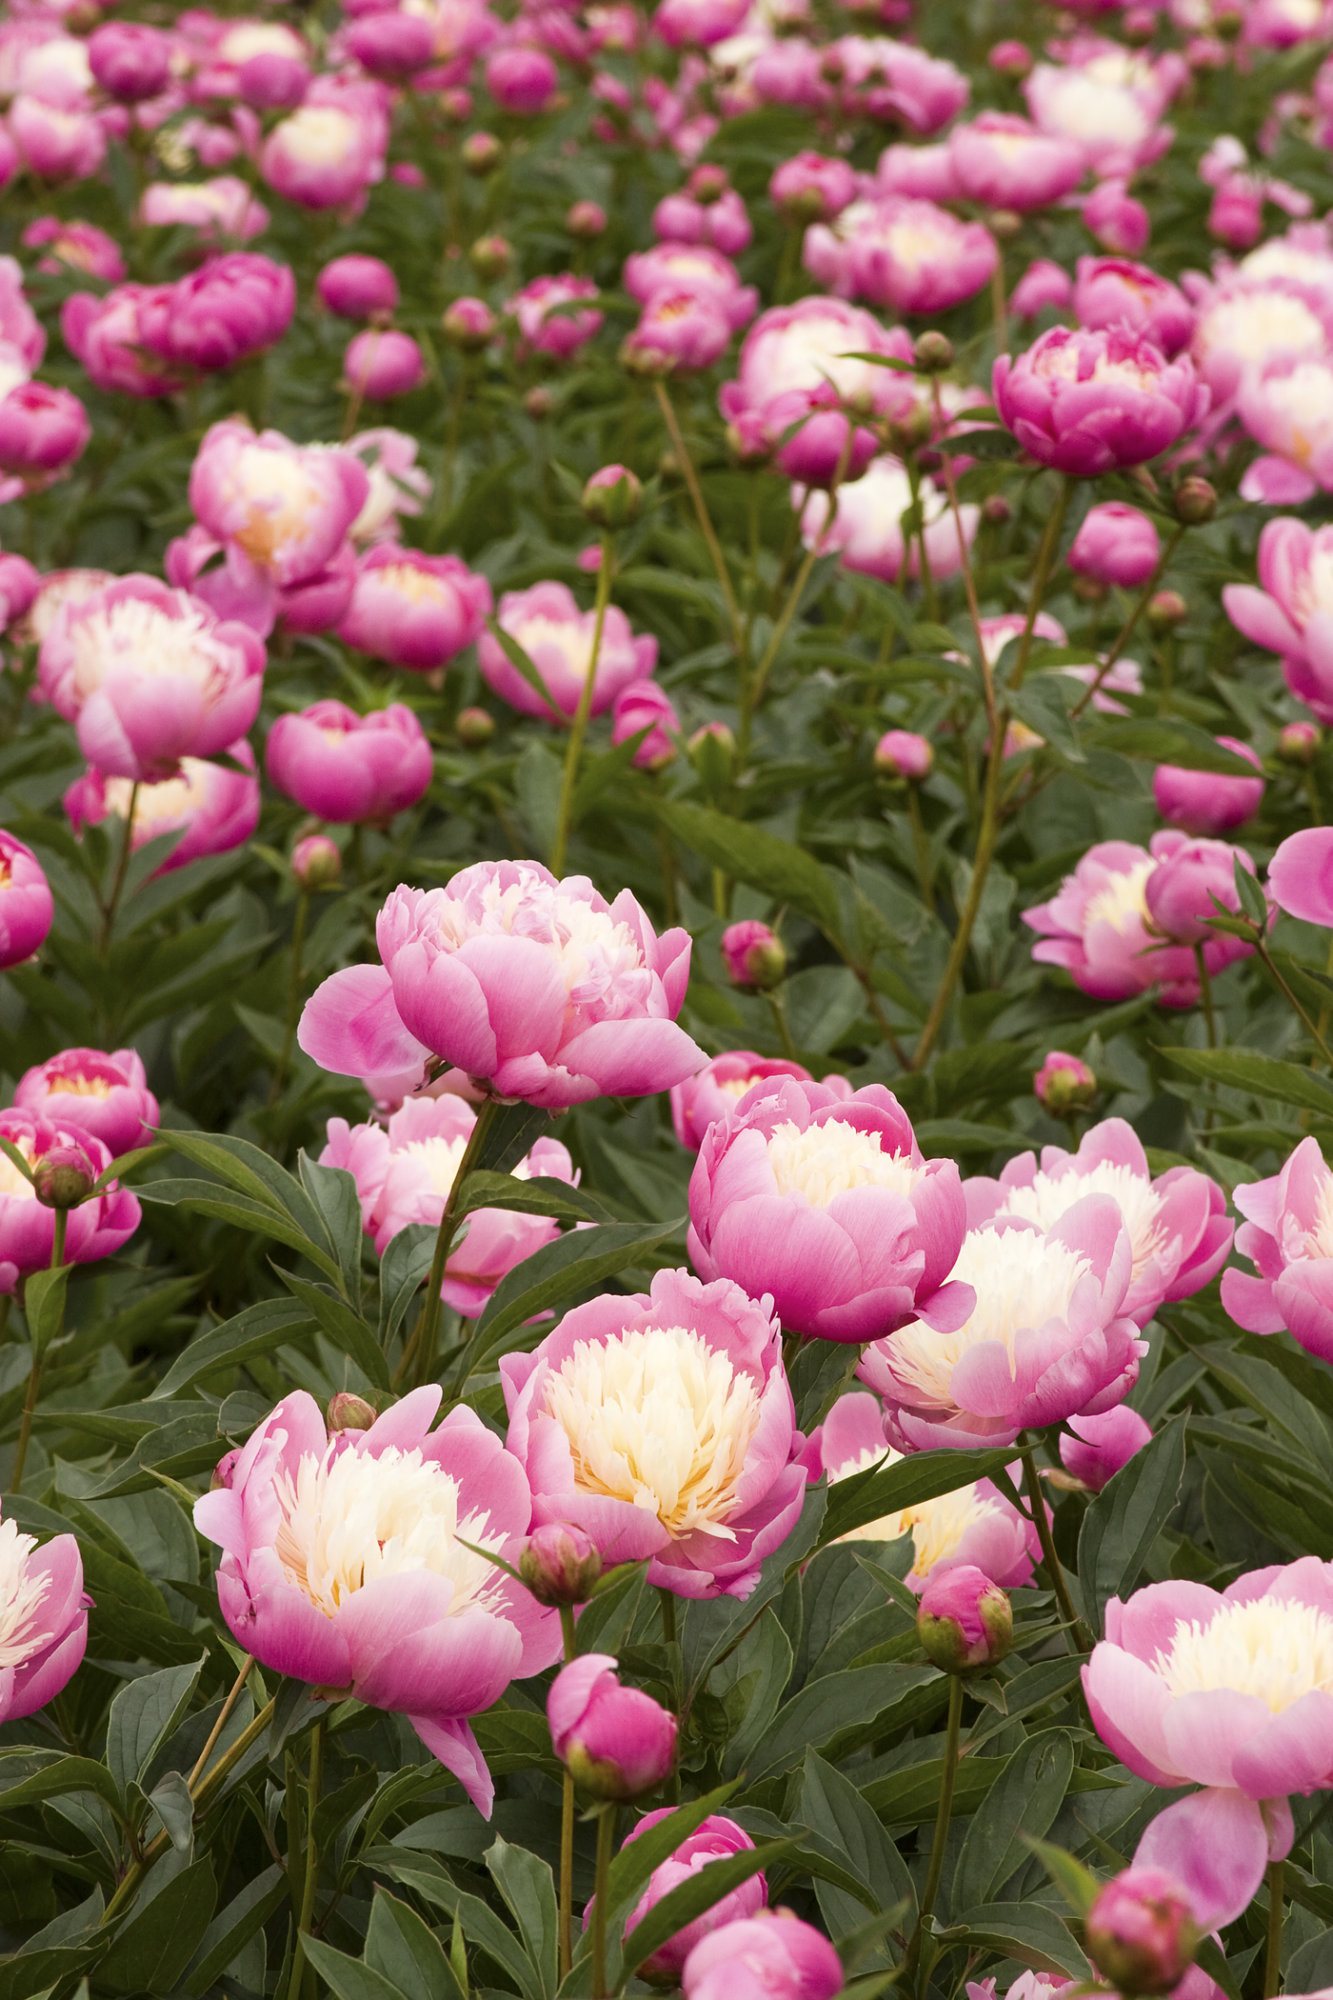 Paeonia 'Bowl of Beauty', very popular and deservedly so!